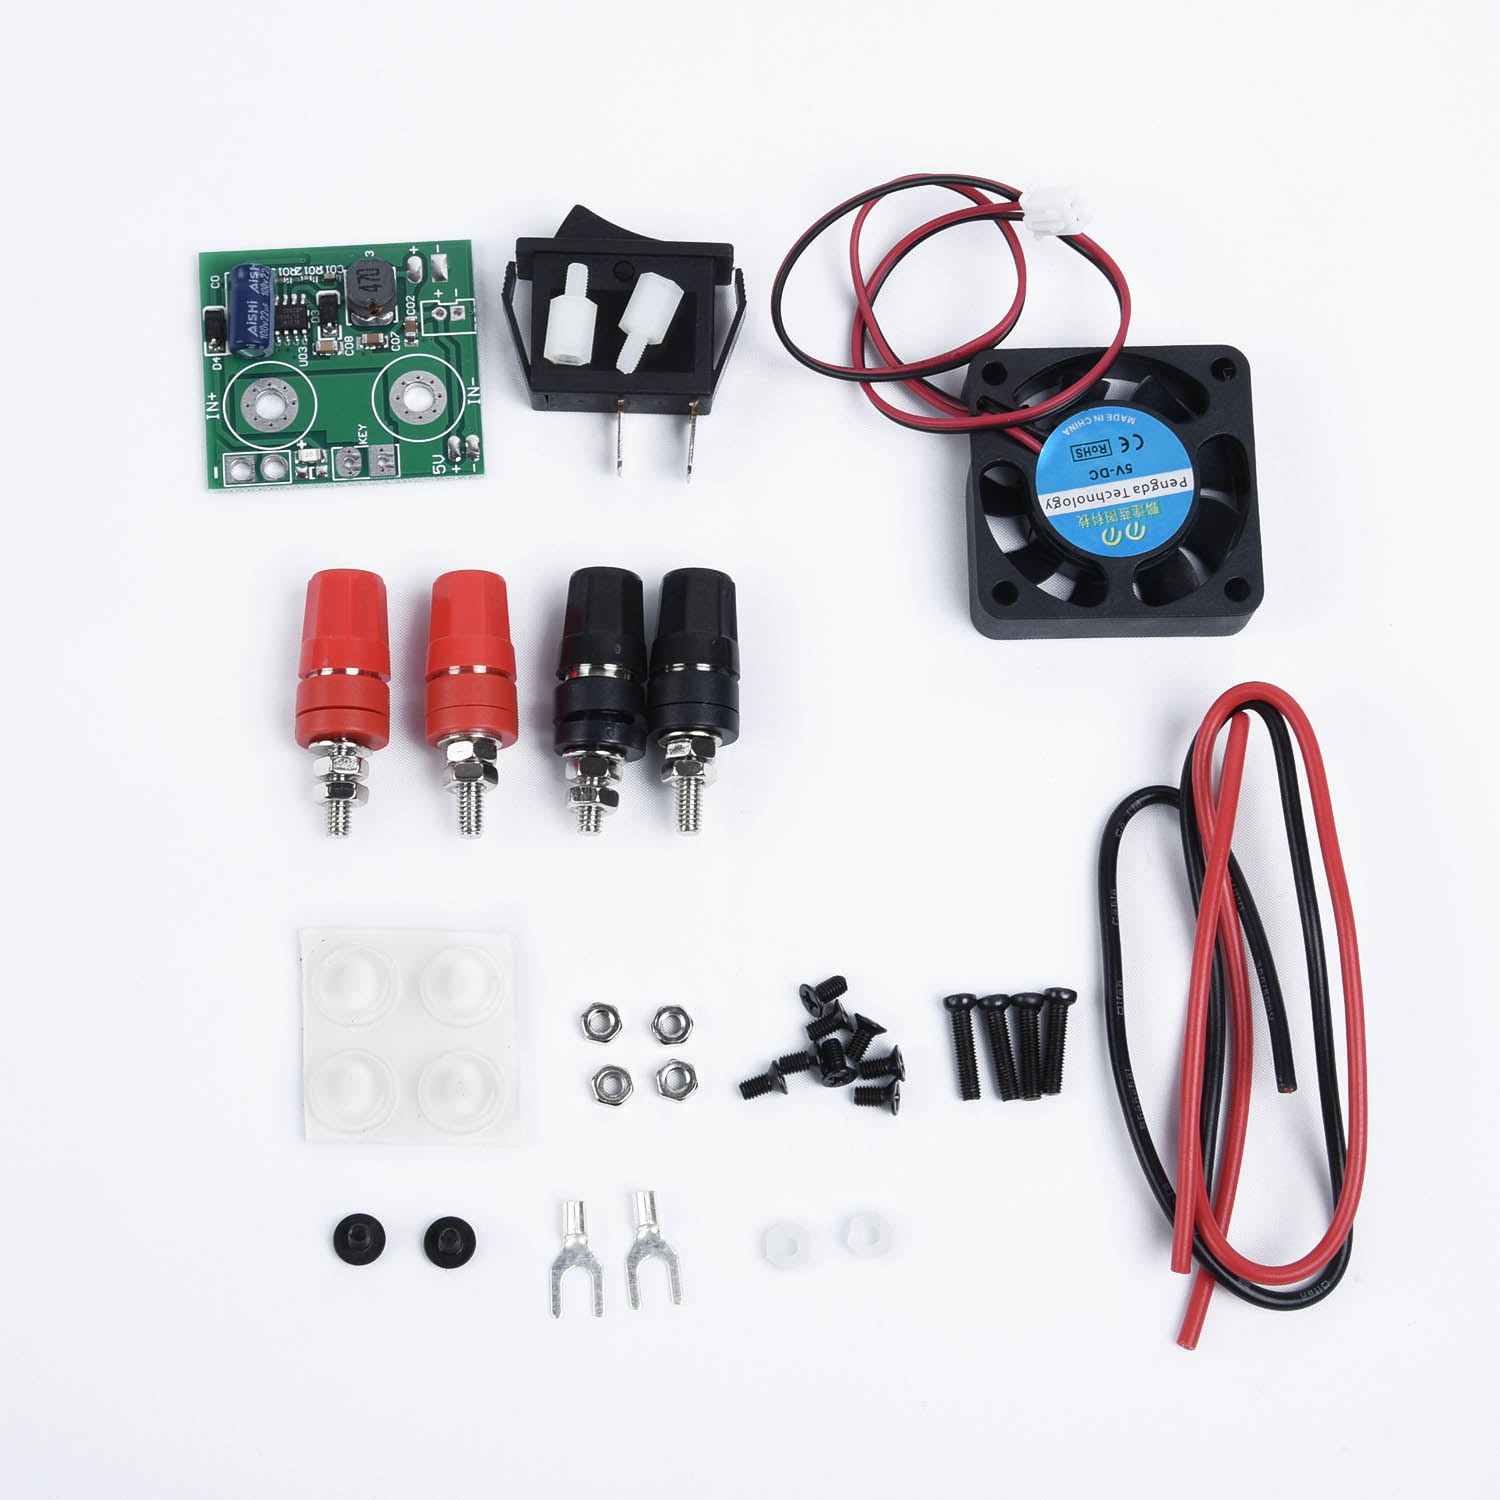 Image 3 - DPS3005 Power Supply Shell DPS3003 DPS5005 DP30V5A DP30V3A LCD DP20V2A Digital Black Programmable Module DP50V5A-in Switching Power Supply from Home Improvement